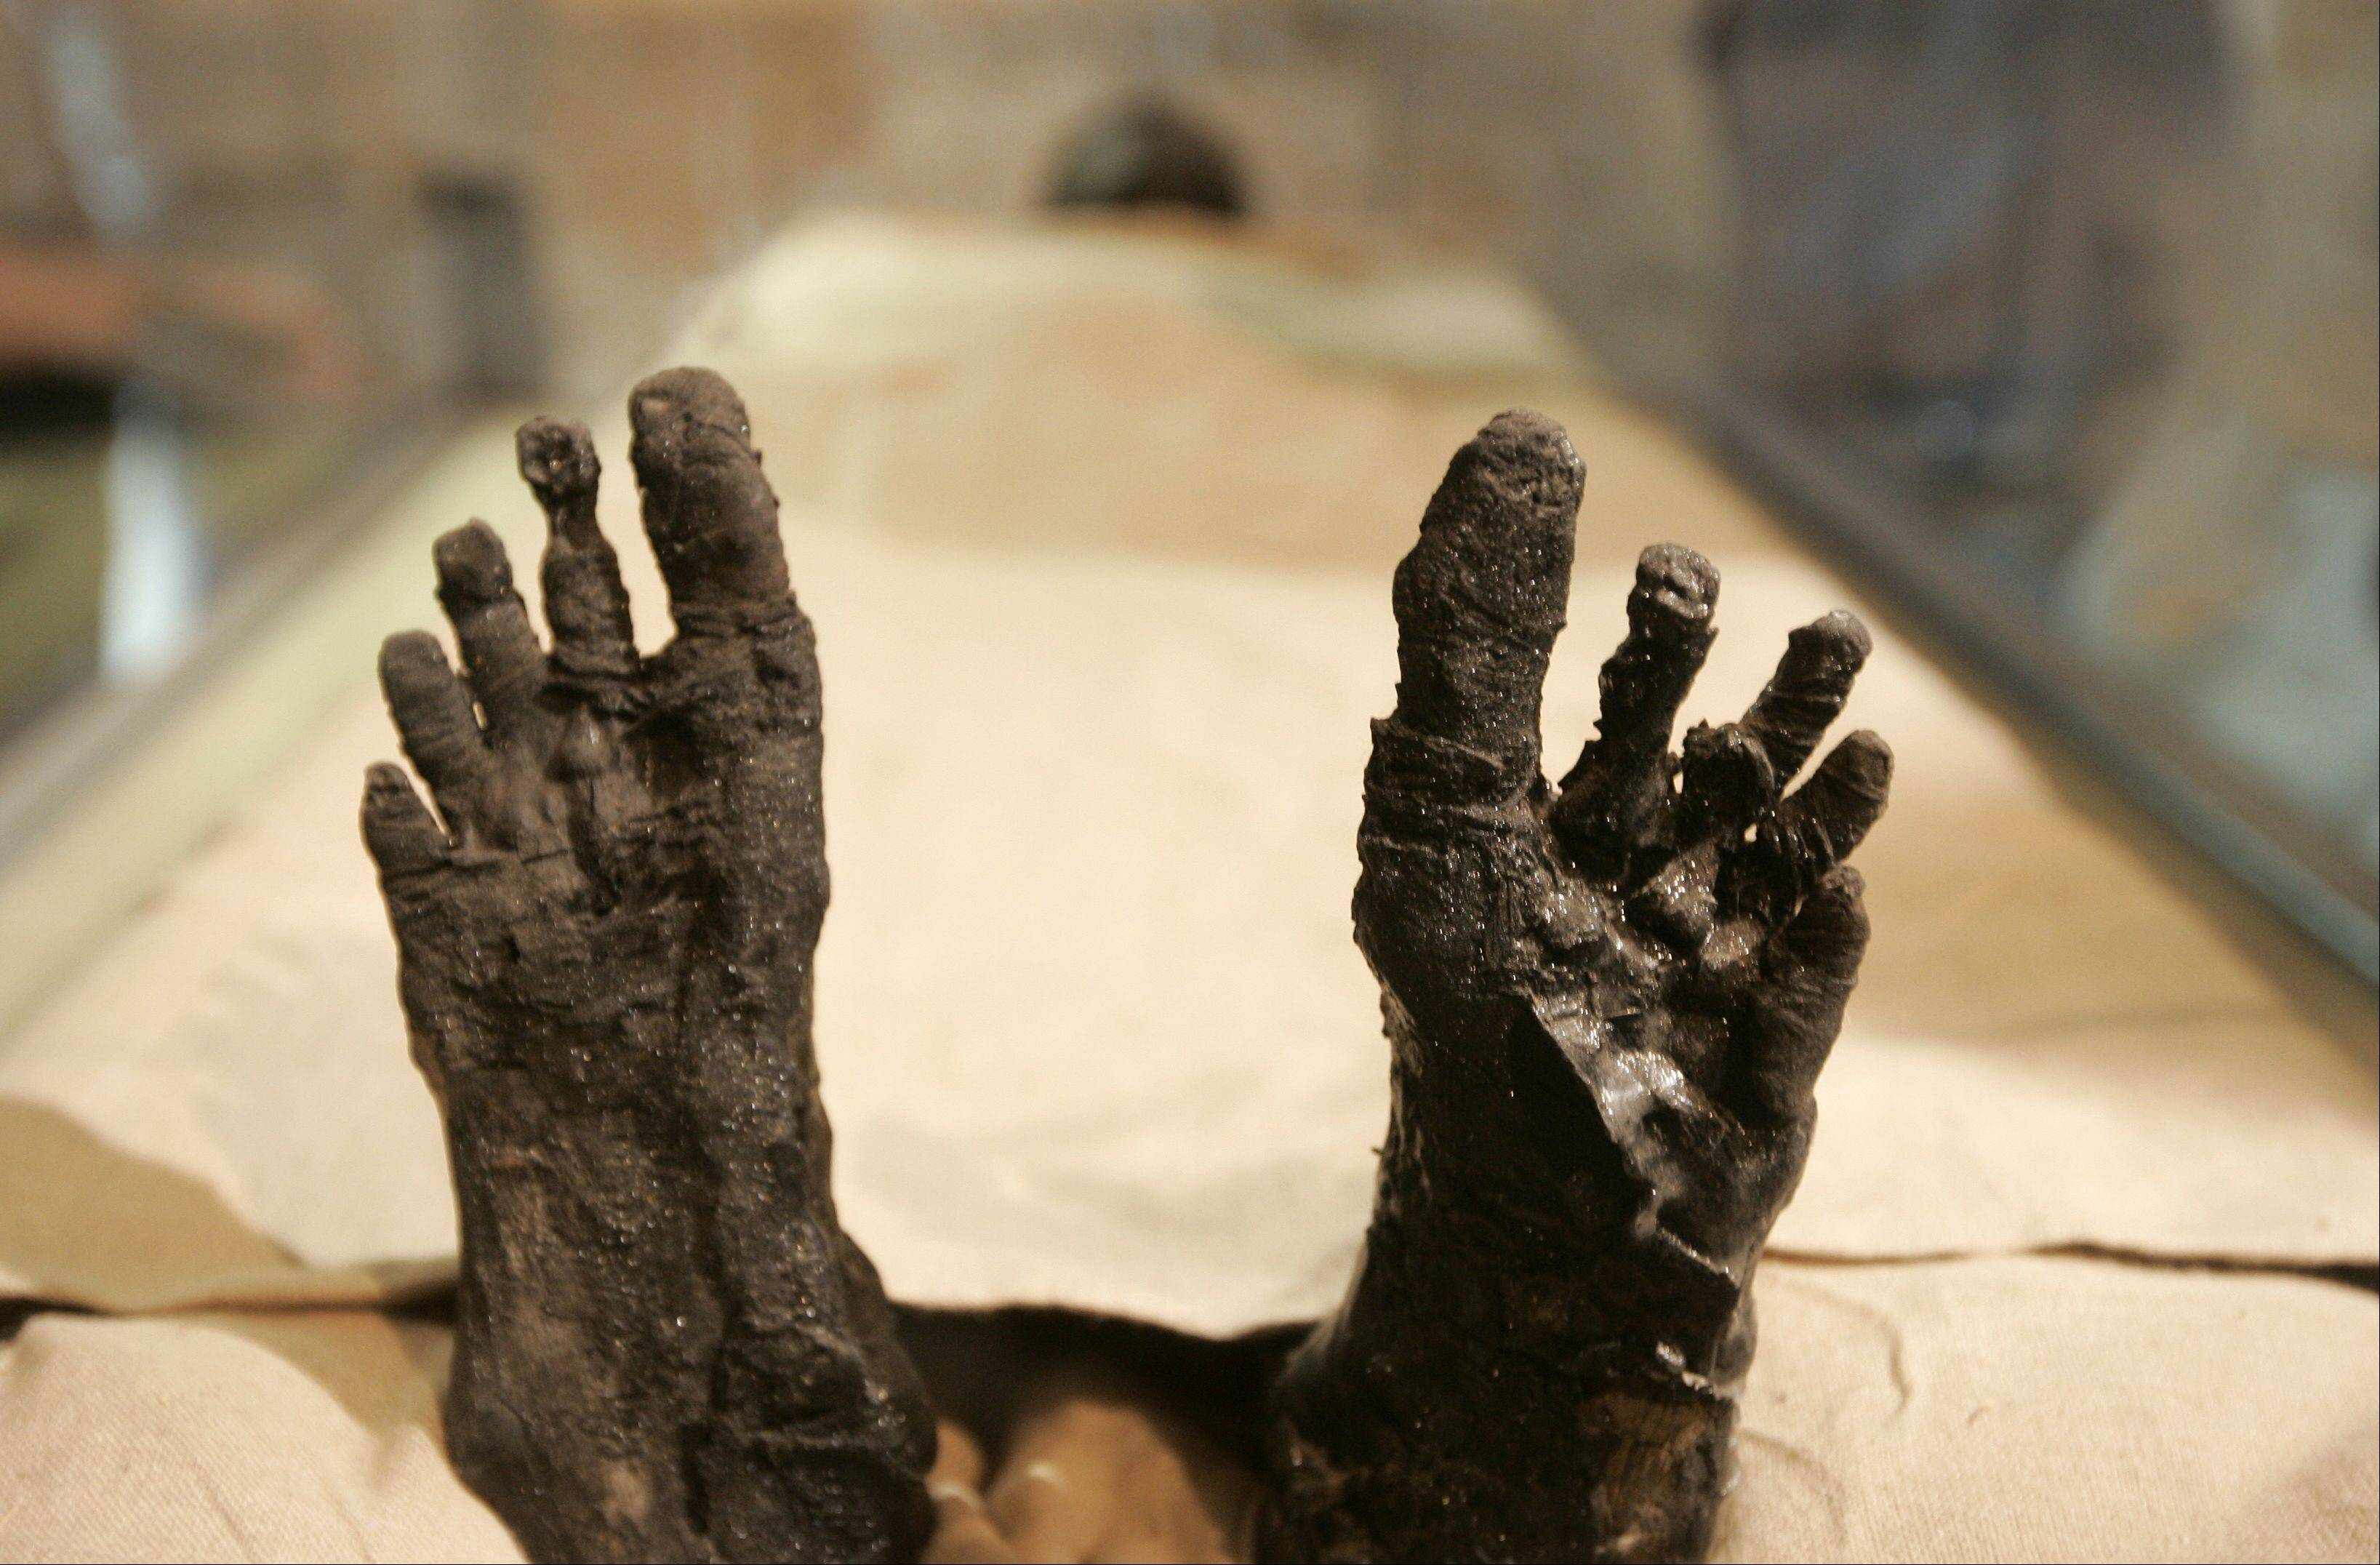 In this photo taken on Nov. 4, 2007, the feet of King Tutankhamen are seen at the moving of the linen-wrapped mummy of King Tut from his stone sarcophagus in his underground tomb in the famed Valley of the Kings in Luxor, Egypt. Egypt's famed King Tutankhamen suffered from a cleft palate and club foot, likely forcing him to walk with a cane, and died from complications from a broken leg exacerbated by malaria, according to the most extensive study ever of his mummy.